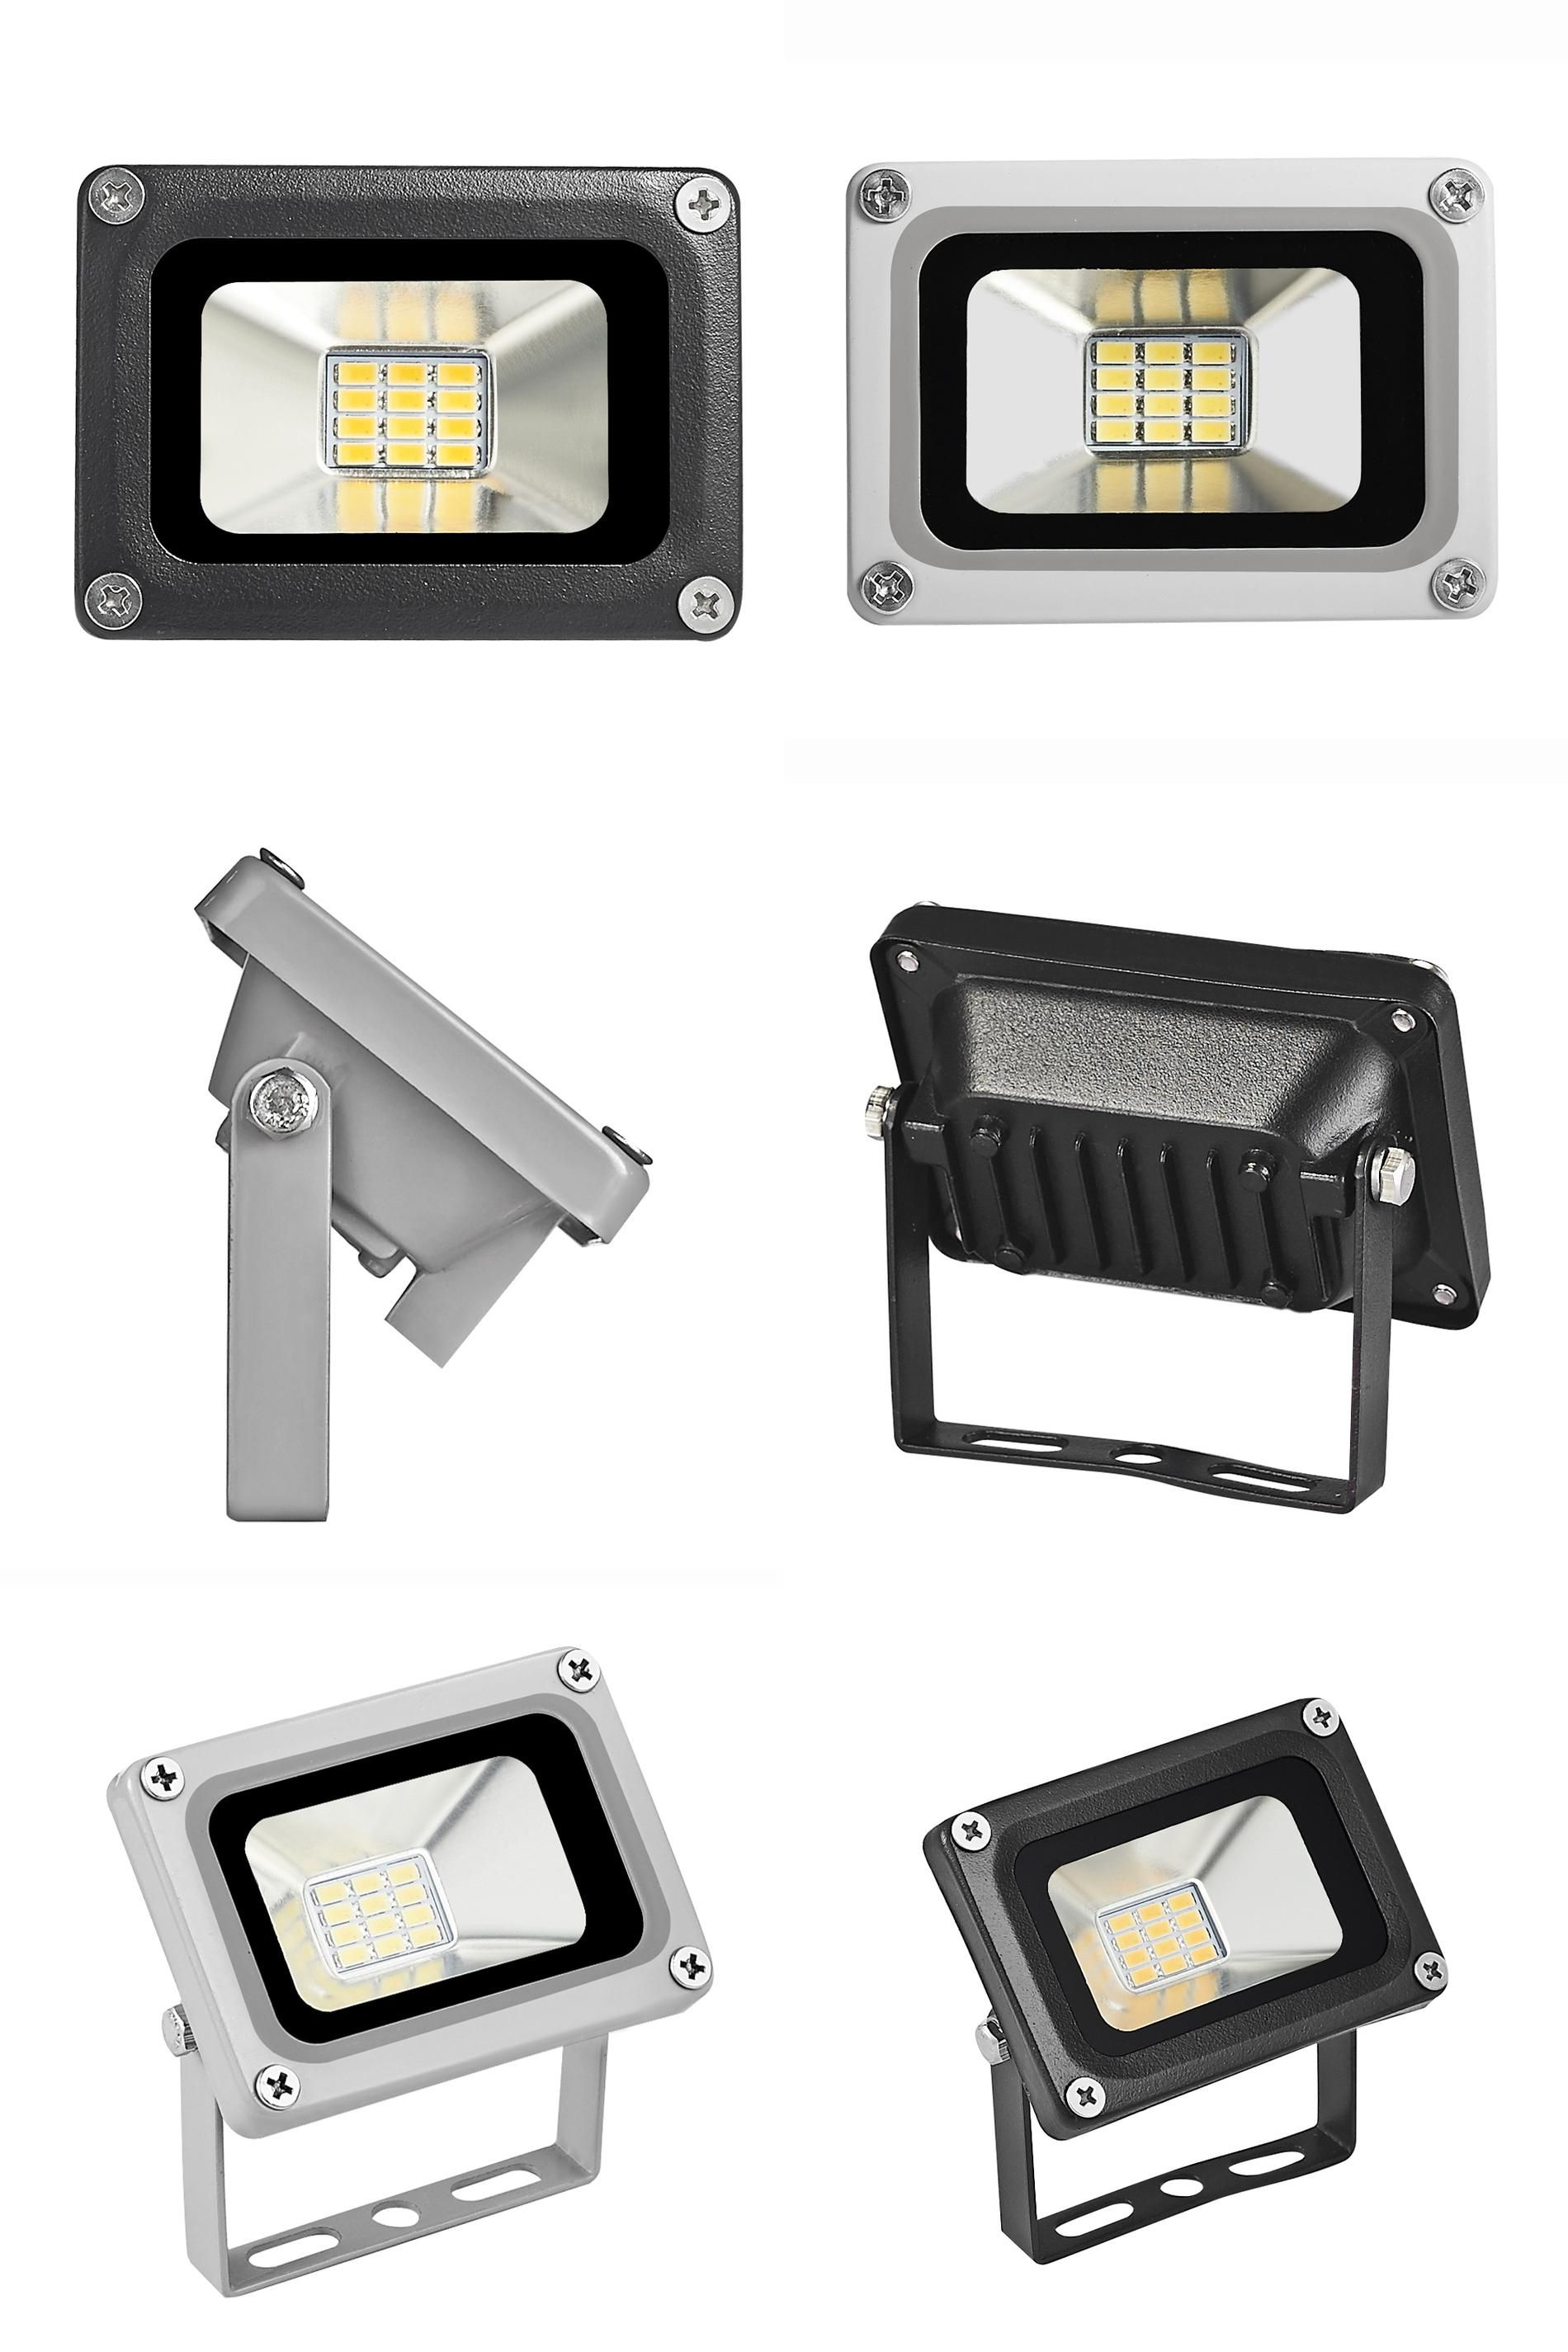 Visit To Buy Hot 12v 10w Waterproof Ip65 Led Flood Light Floodlight Landscape Outdoor Flood Outdoor Flood Lights Led Flood Lights Garden Spotlights